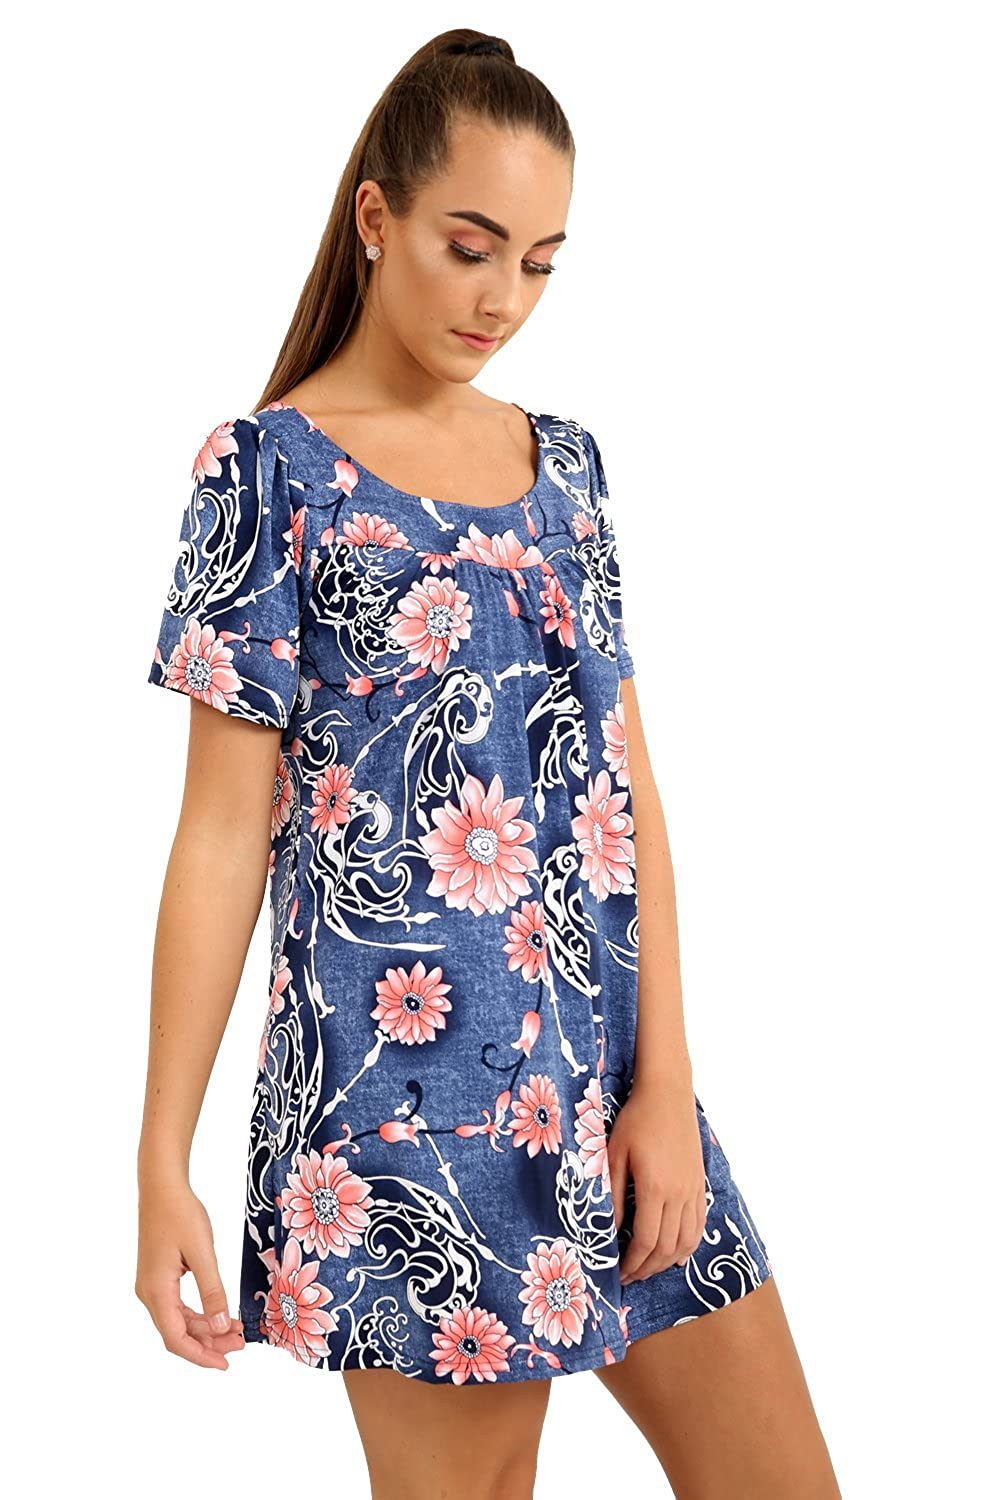 Womens Plus Size Short Sleeve Scoop Neck Veno Floral Print Smock Tunic Top 14-28